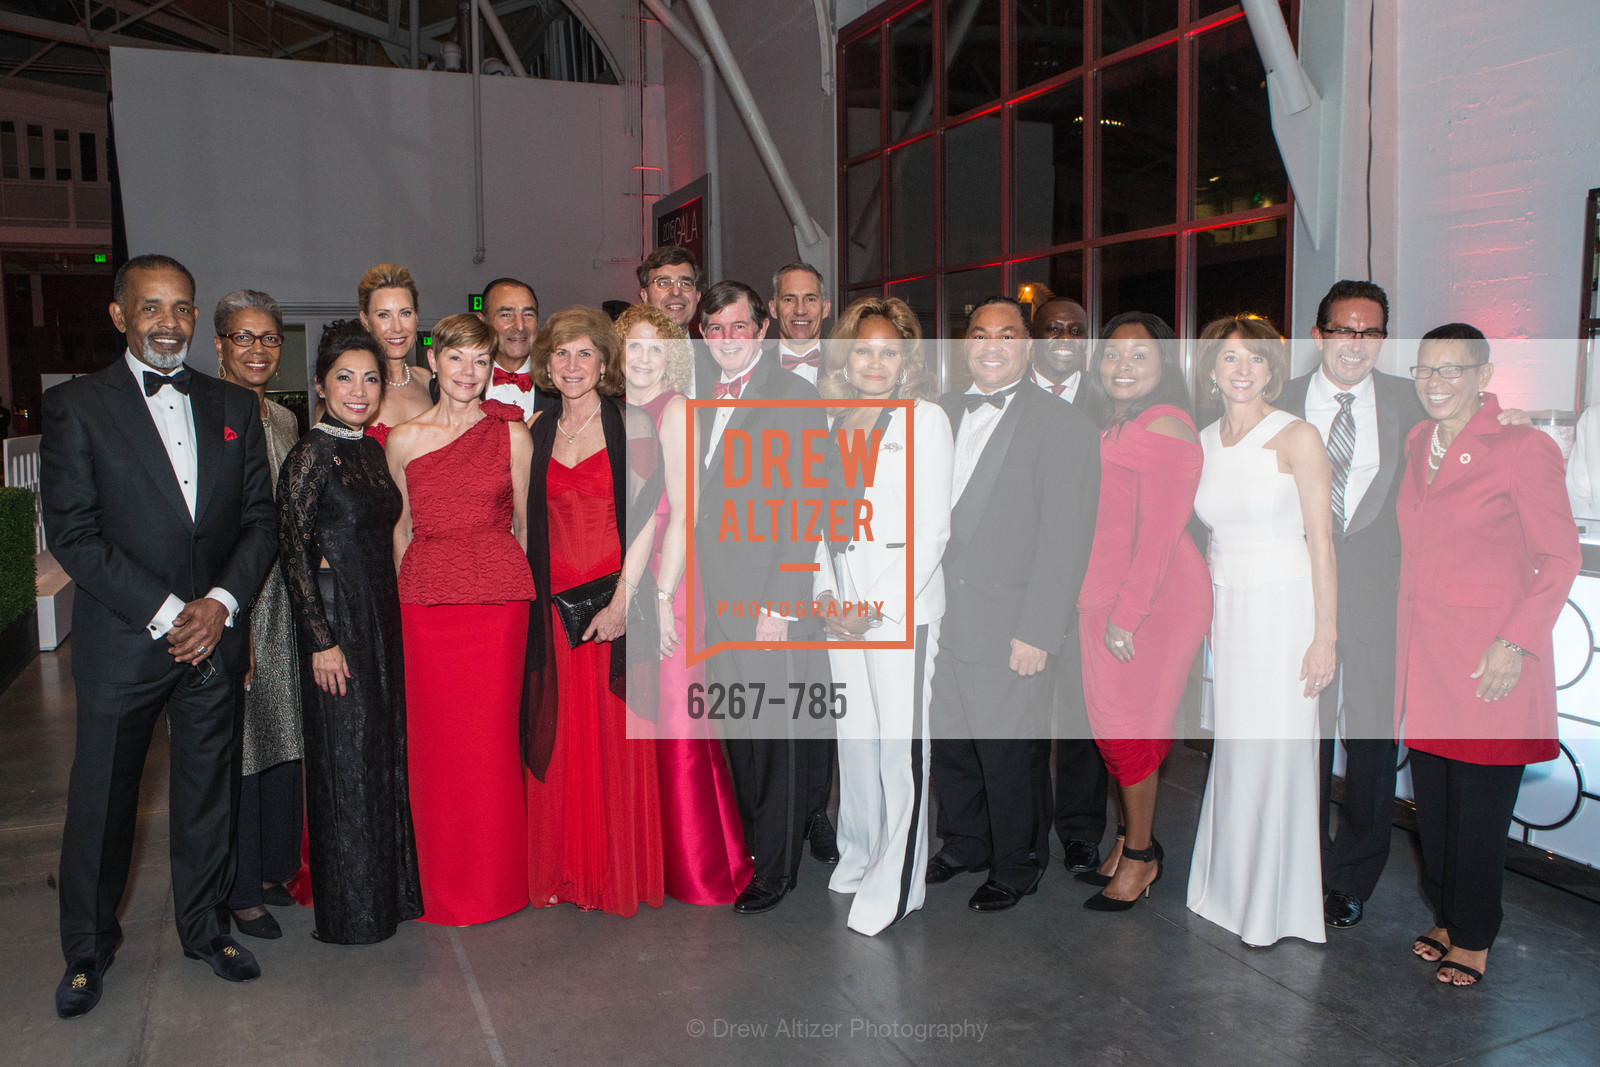 Joe Madison, Sharon Madison, Quinn Tran, Carolyn Mehran, Alexander Mehran, Paula Downey, Sarah Earley, Gail McGovern, Anthony Earley, Janice Bryant Howroyd, Mark Cloutier, Teresa Briggs, Carlton Bryant, Rose White, Keith White, Donna Duay, 2015 RED CROSS Gala, US, April 11th, 2015,Drew Altizer, Drew Altizer Photography, full-service agency, private events, San Francisco photographer, photographer california